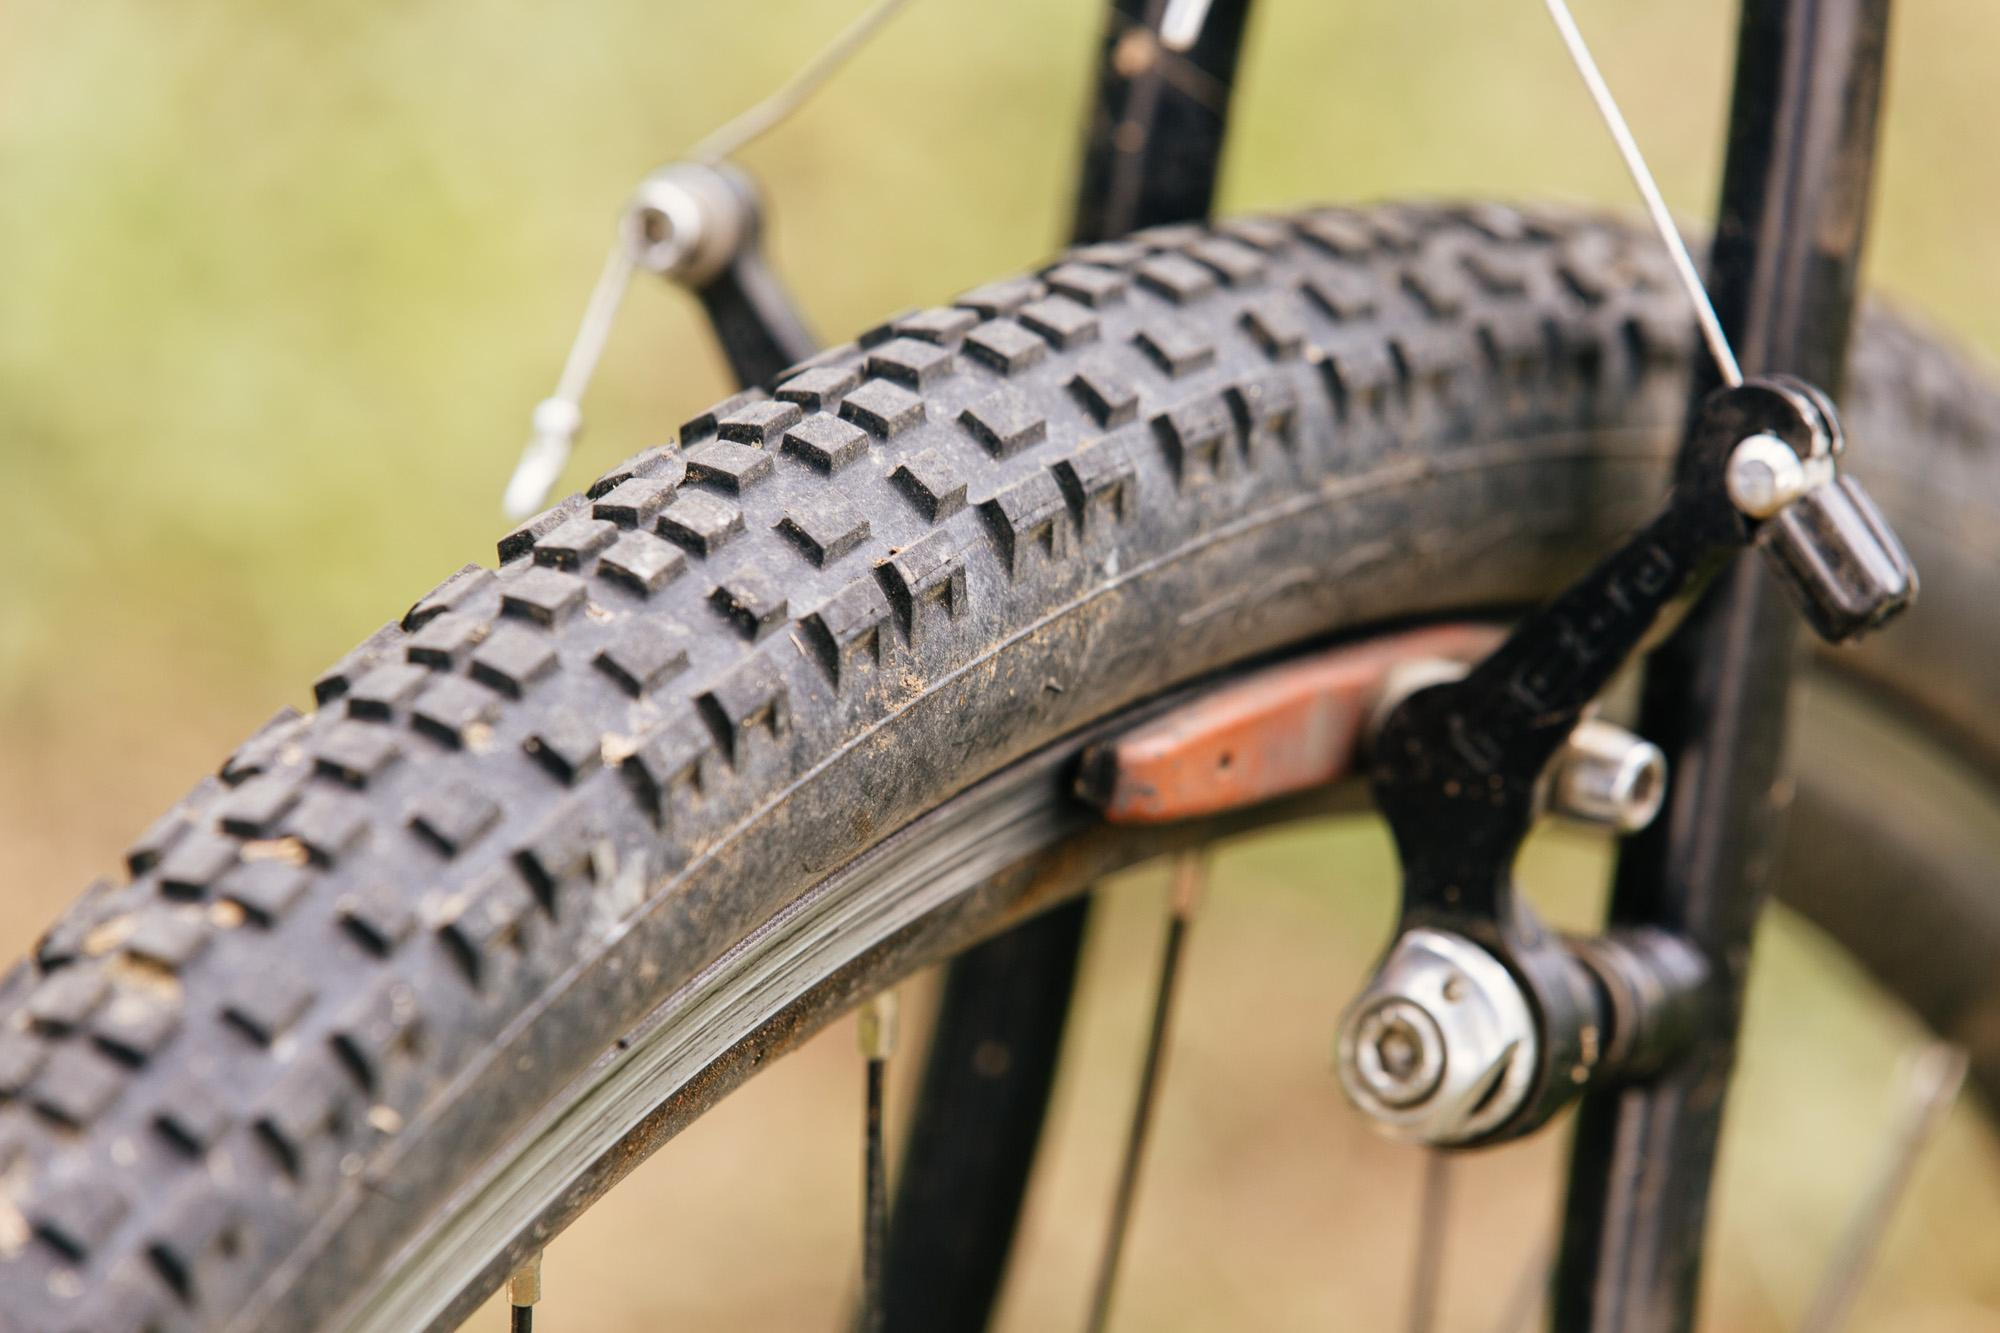 Surly_Knard_Tire-41c-3